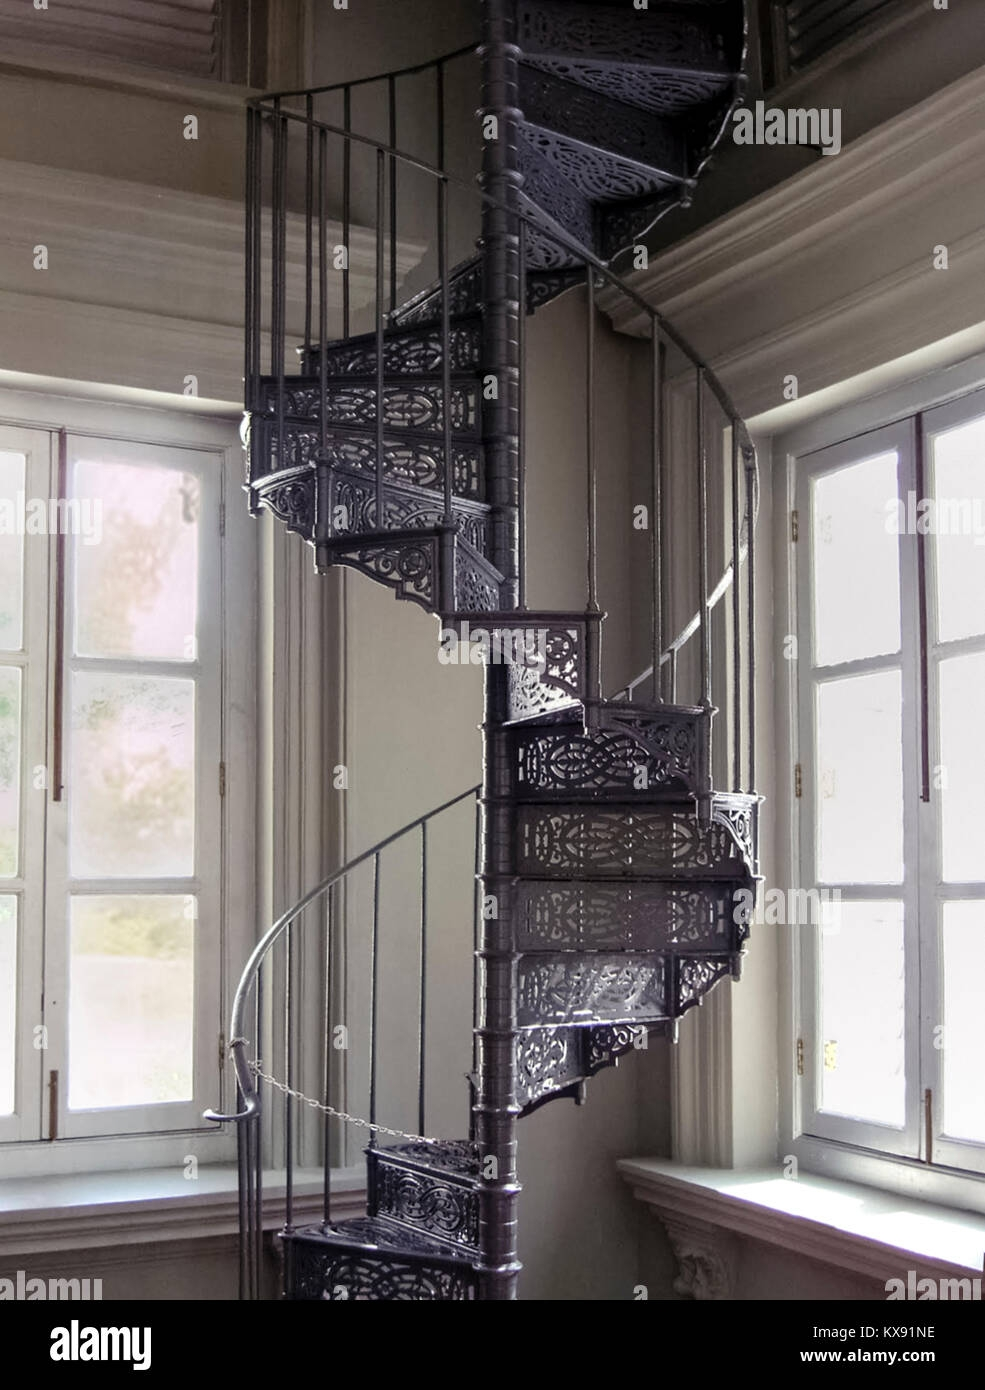 Cast Iron Spiral Staircase In The National Museum Of Singapore   Cast Iron Spiral Staircase   Modern   Traditional   Stair Case   Kitchen   Railing